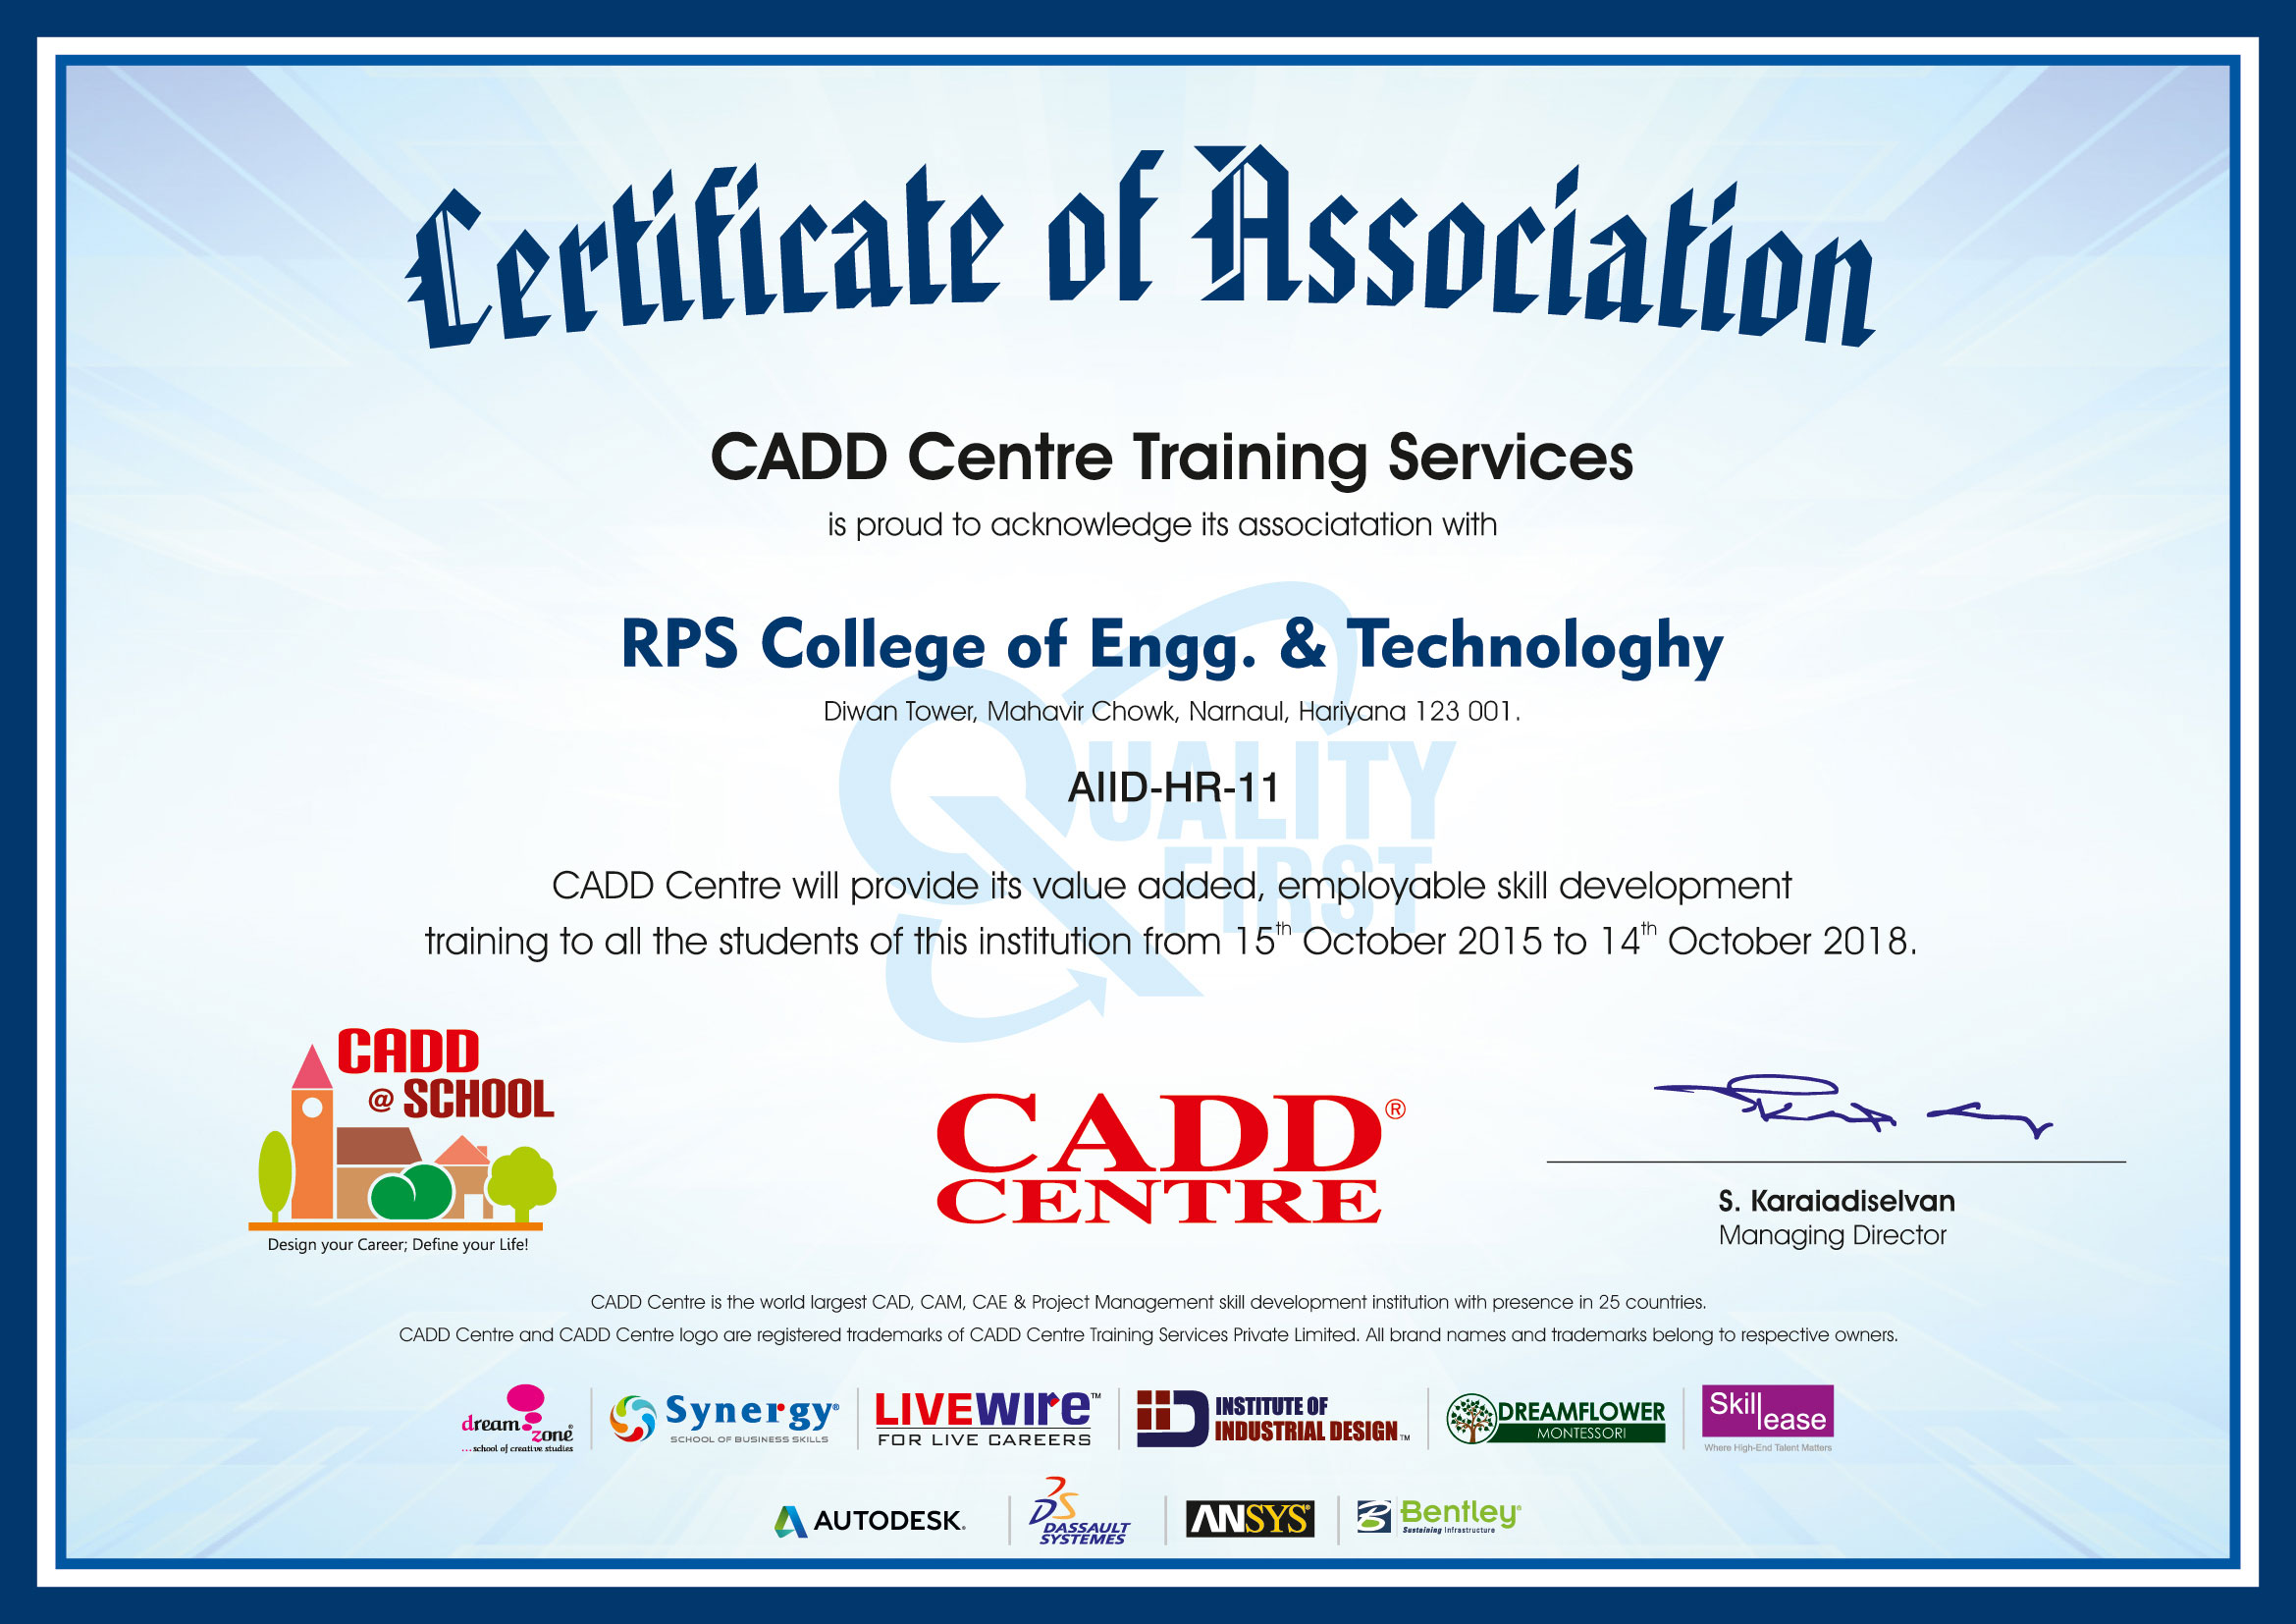 Rps_College_Engg